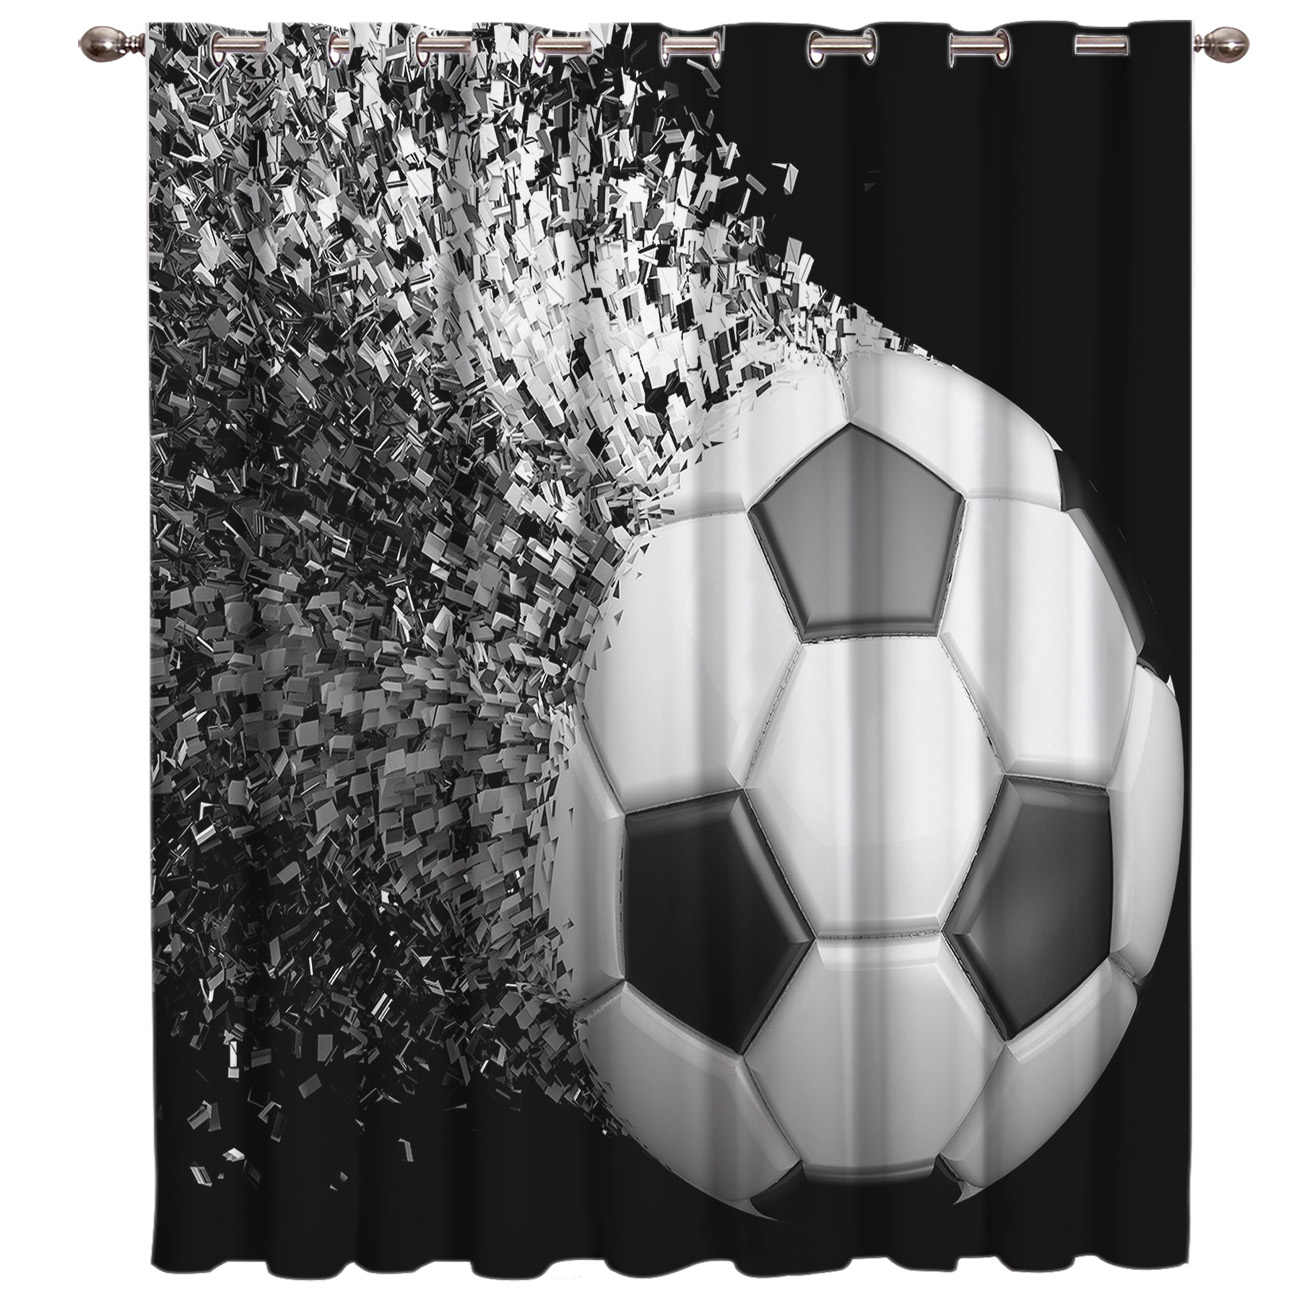 Soccer Curtains Balls Football Design 3D Window Curtains for Living Room Bedroom Kitchen Cortinas Para Sala De Estar Polyester